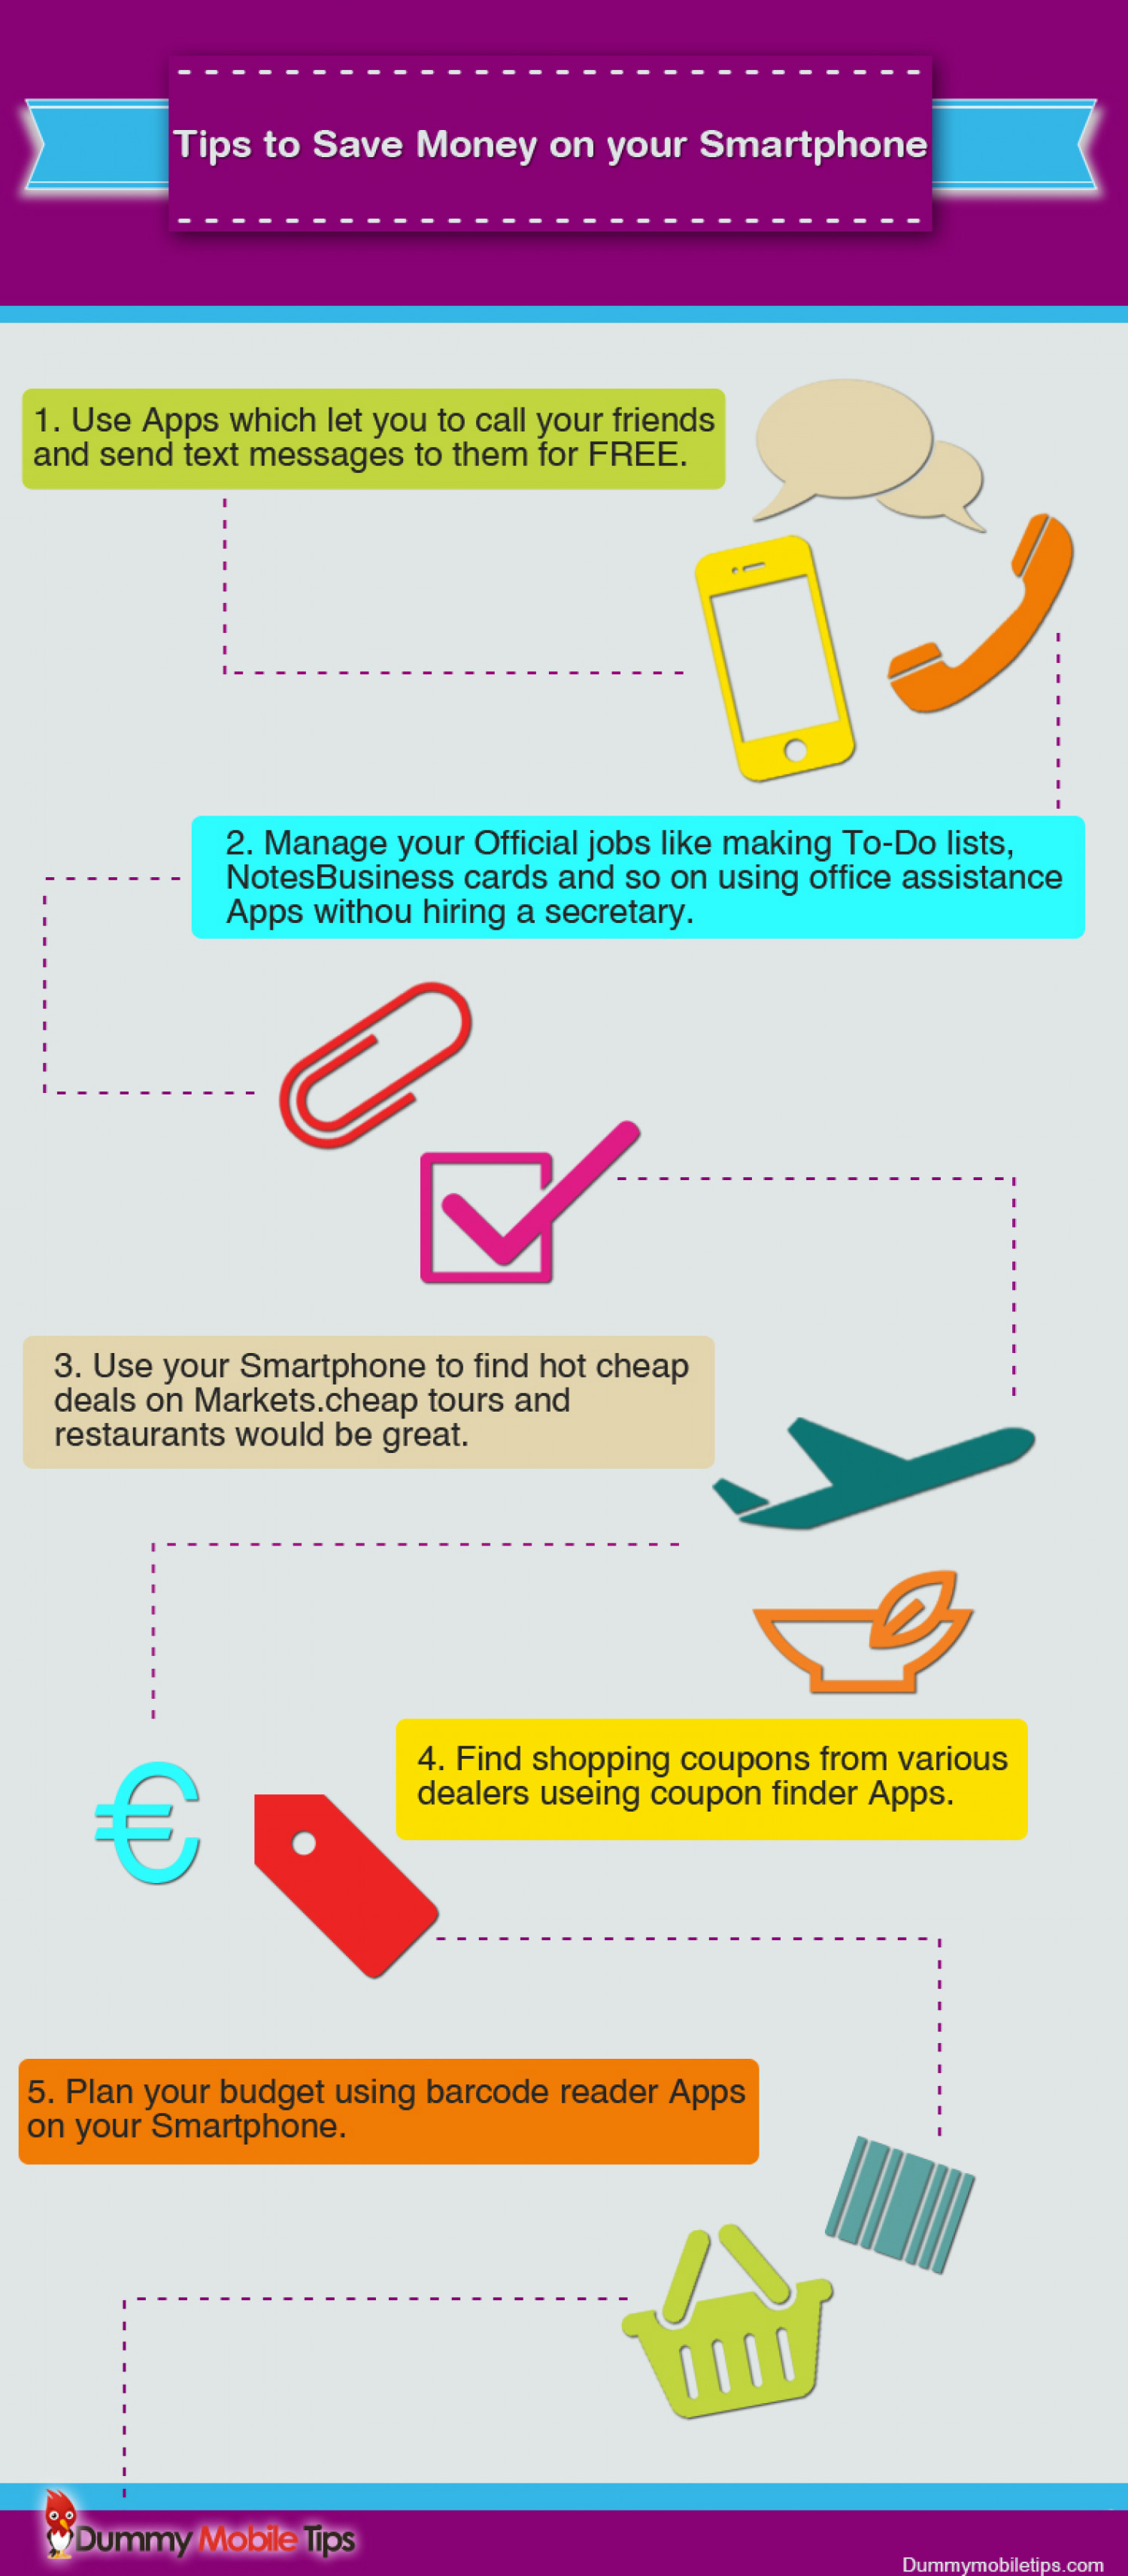 Tips to save money on your Smartphone Infographic